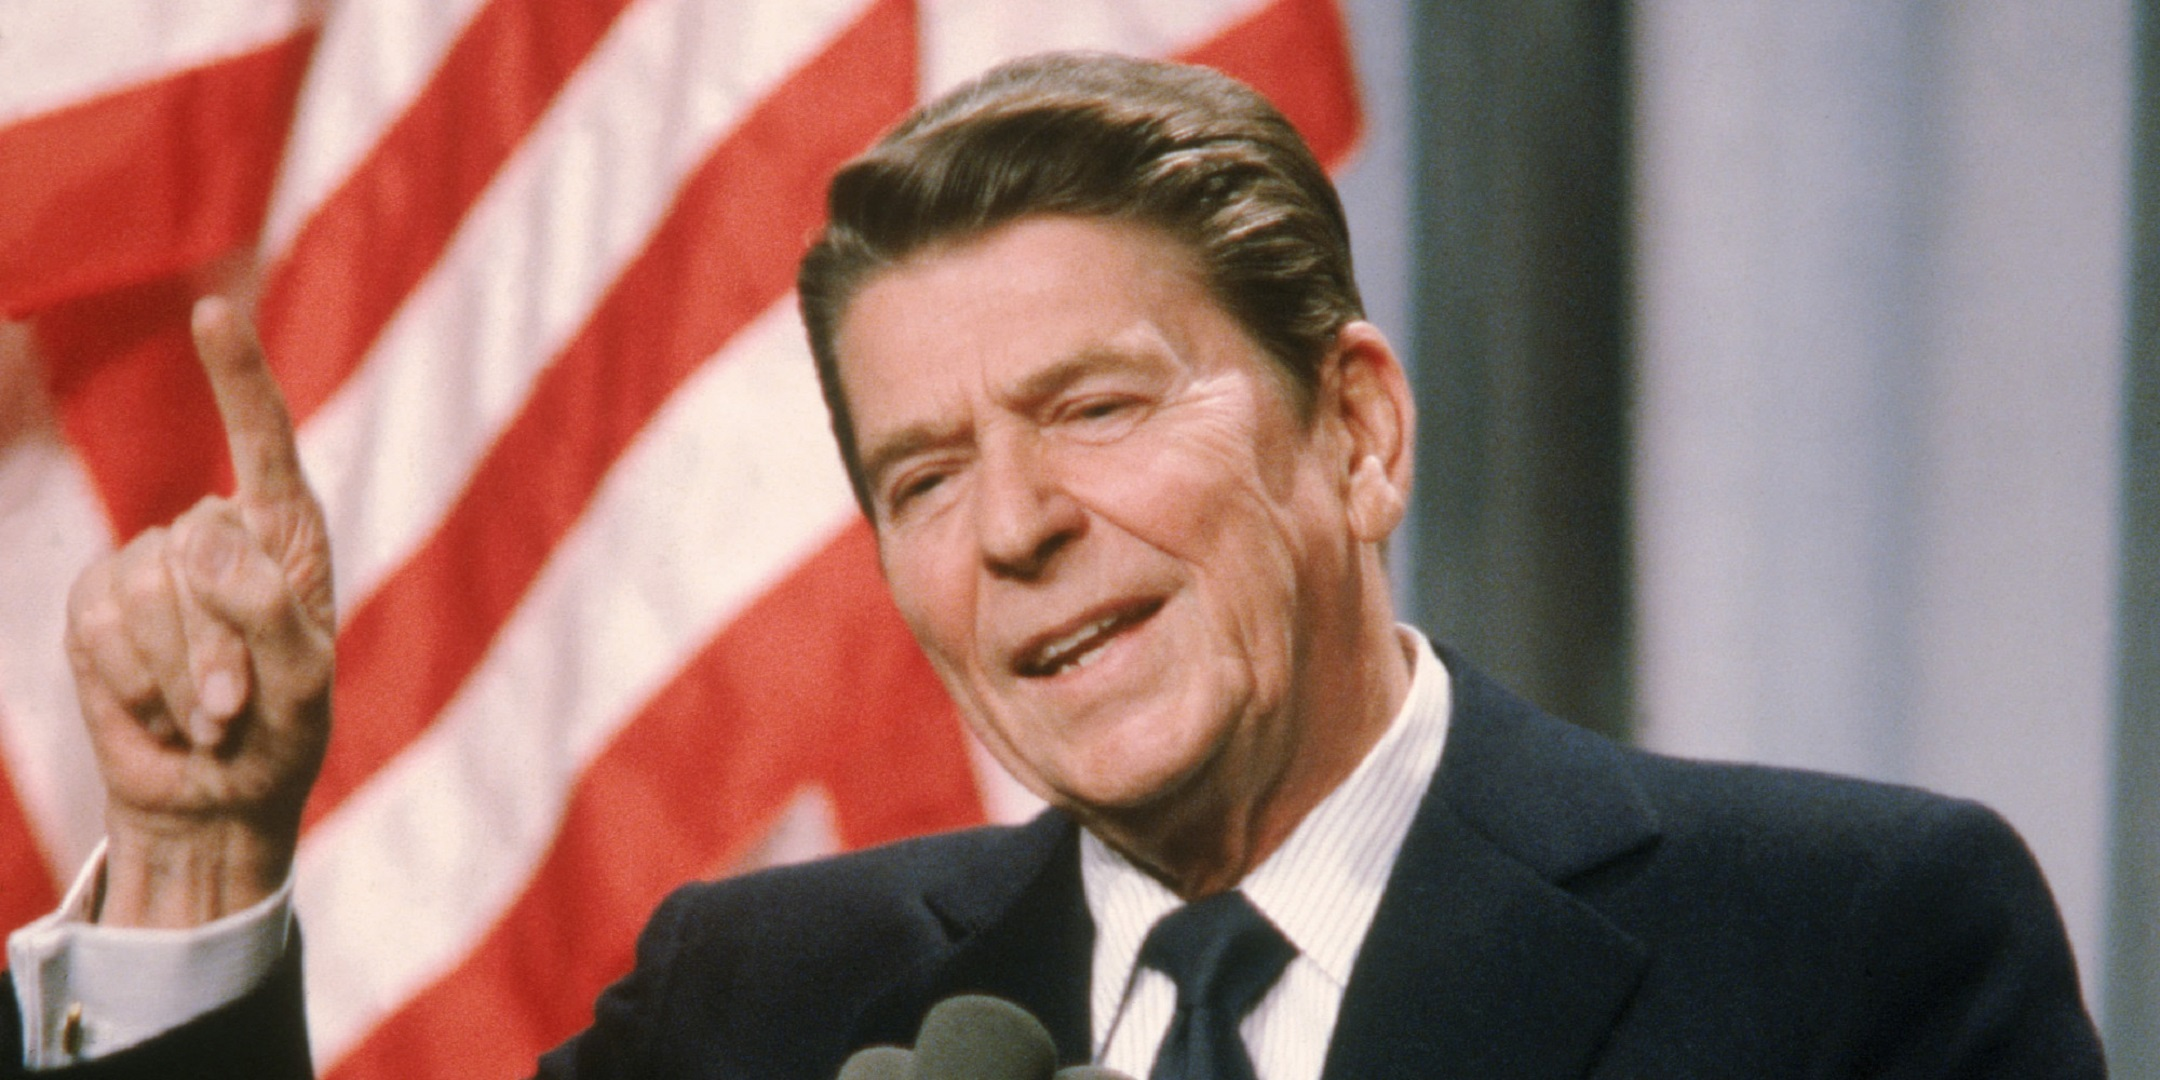 Ronald Reagan Wallpapers Images Photos Pictures Backgrounds